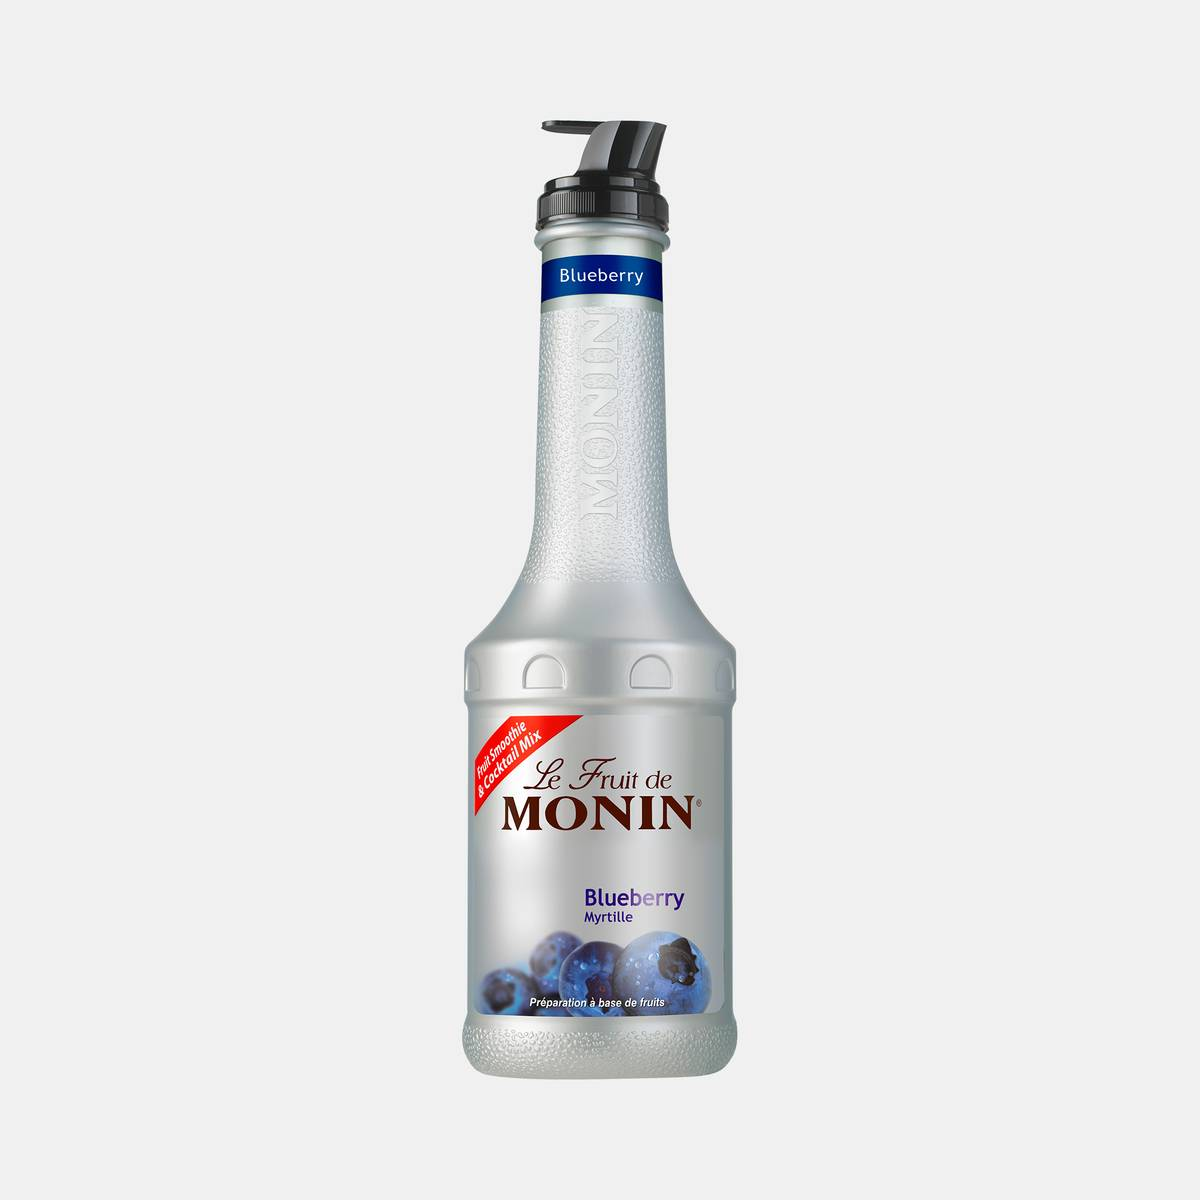 Monin Blueberry Puree Fruit Mix 1 Liter Bottle